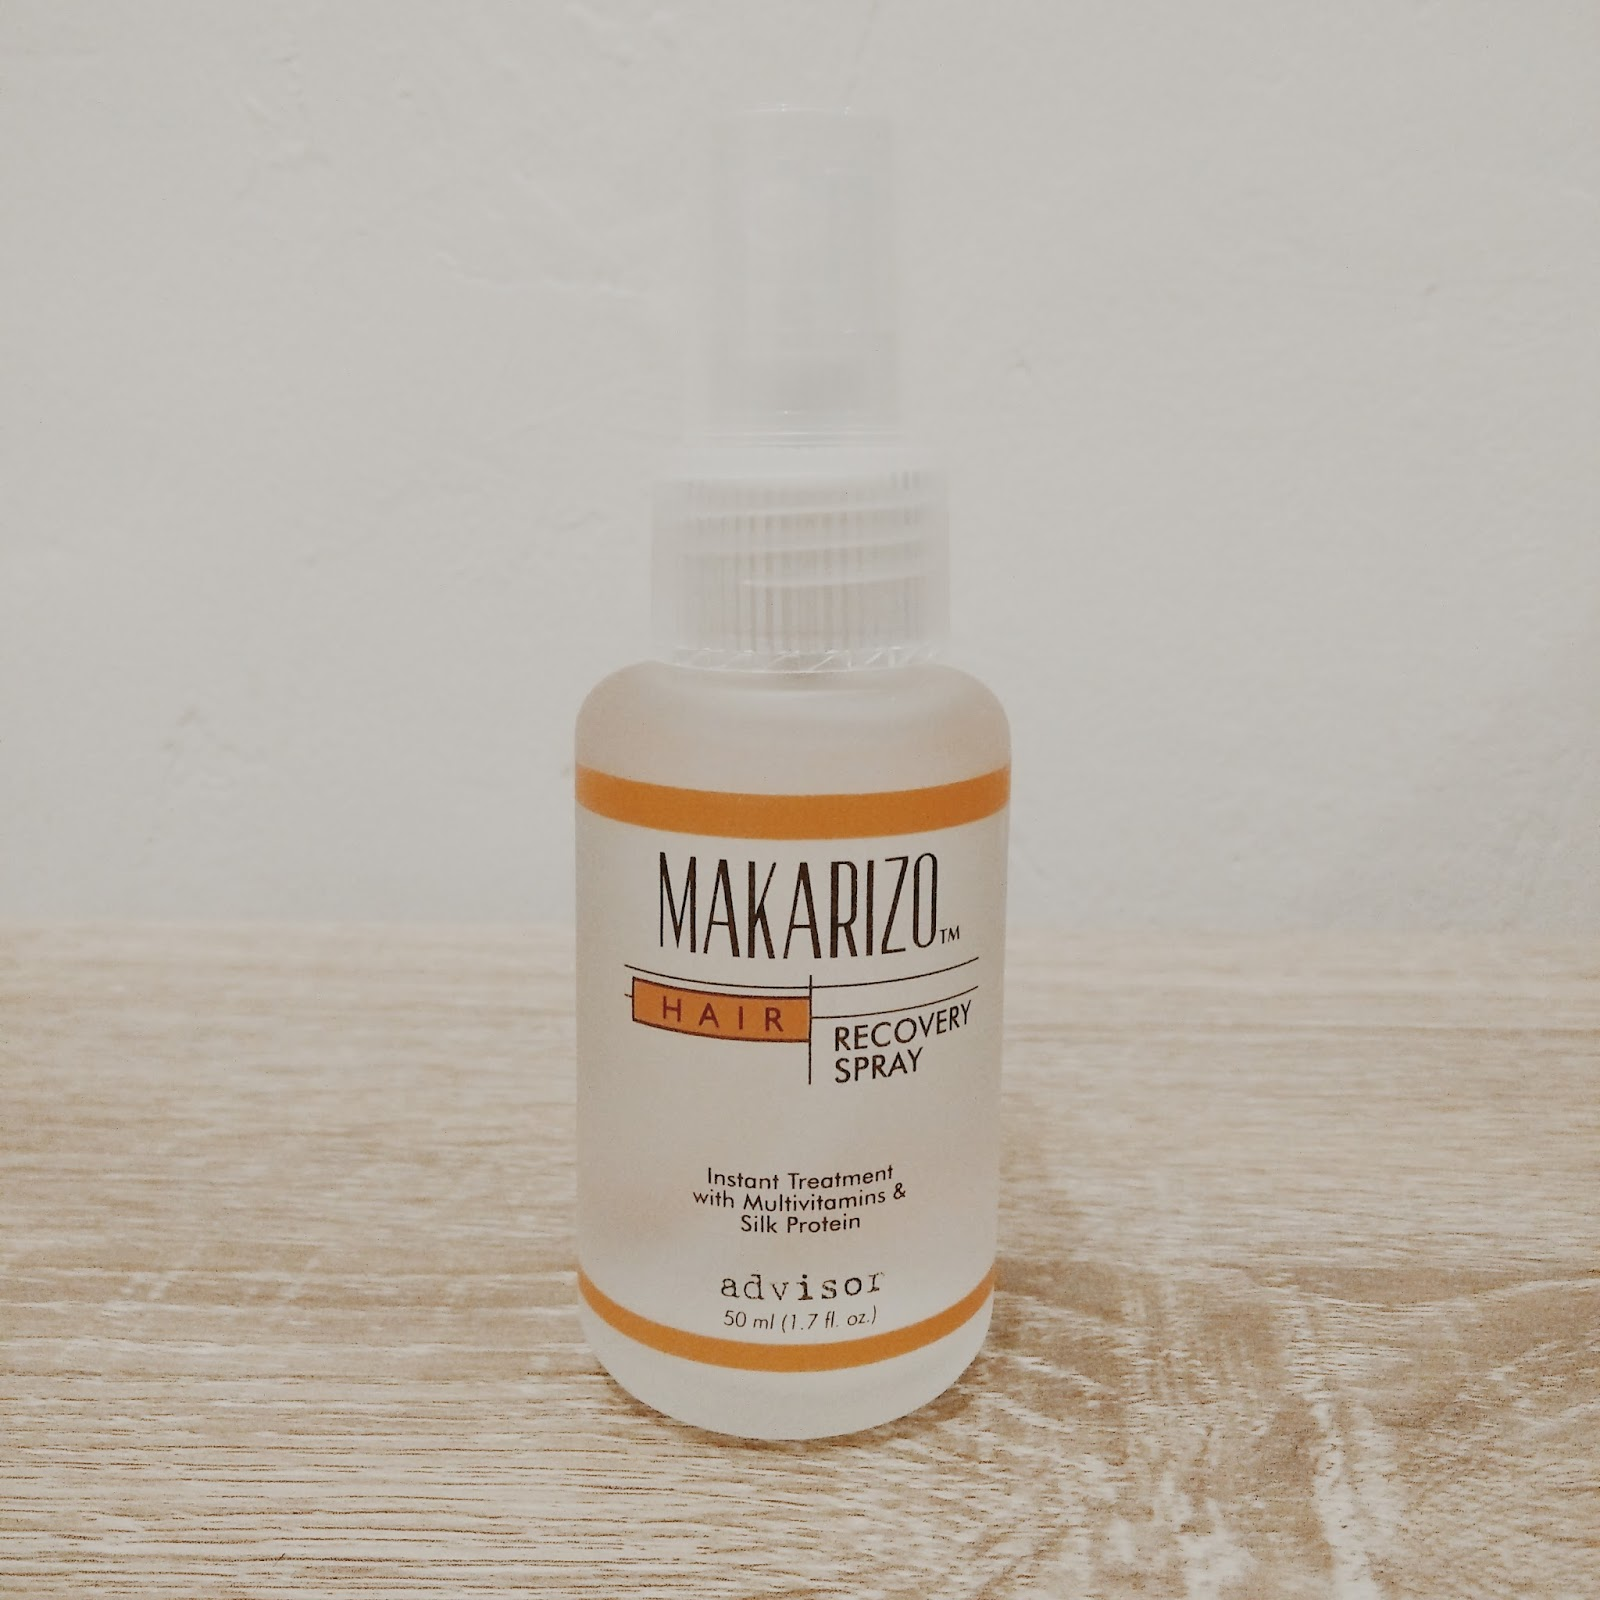 Petite Pita Makarizo Hair Recovery I Was Looking For A Protectant One Of My Video And Surprised Enough To Found This At The Supermarket Its Pricey Tiny Bottle Tho